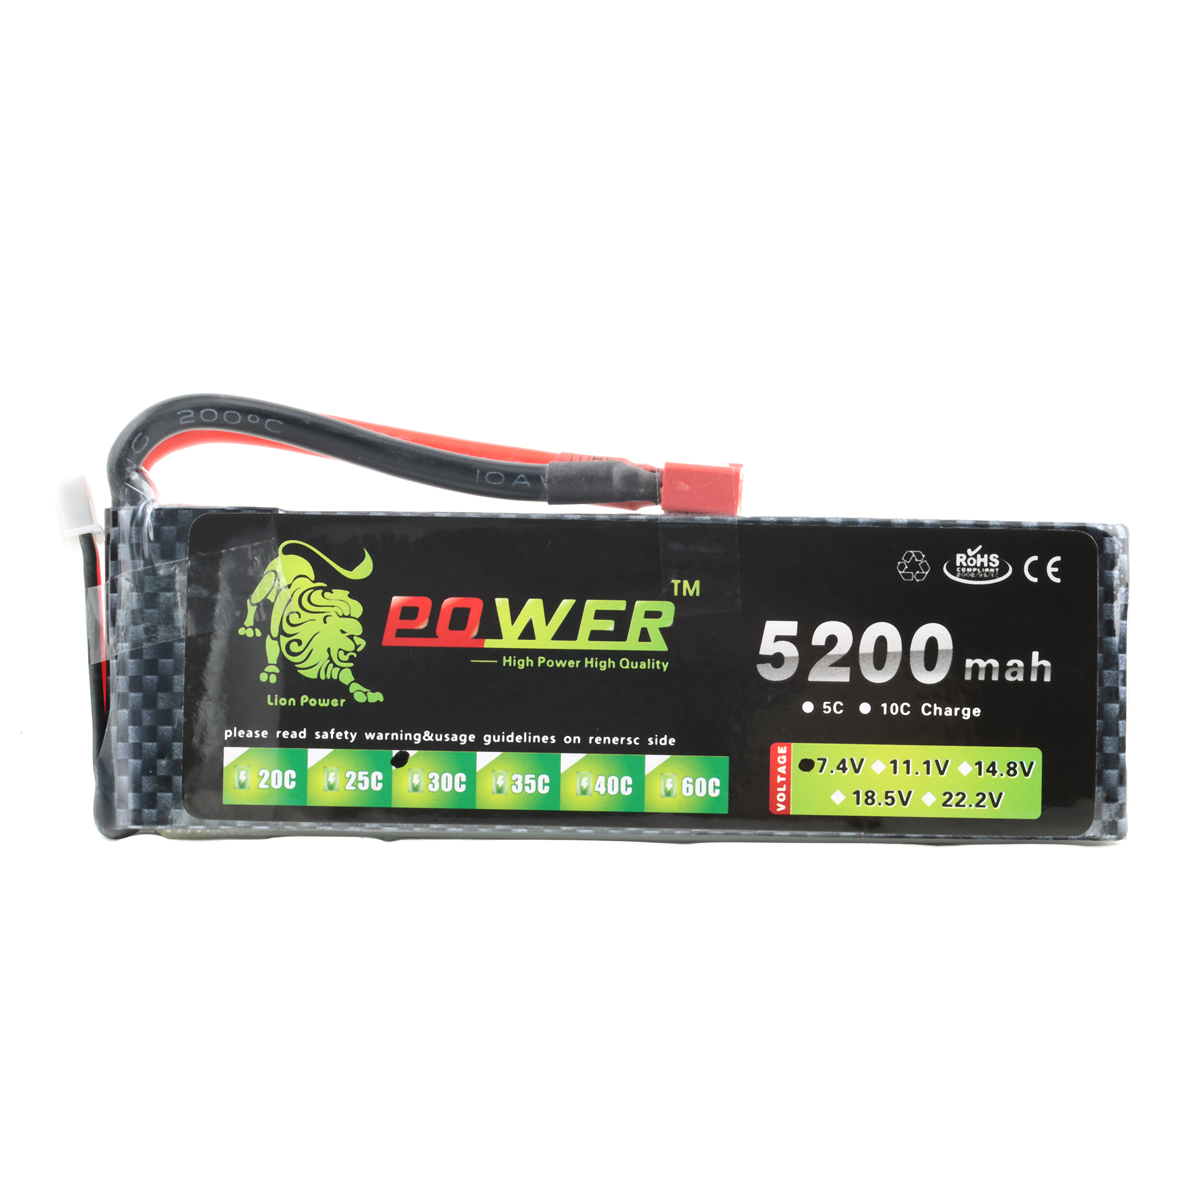 Lion Power 7.4V 5200mAh 30C Rechargeable Lipo Battery for RC Car Boat Airplane Helicopter<br><br>Aliexpress